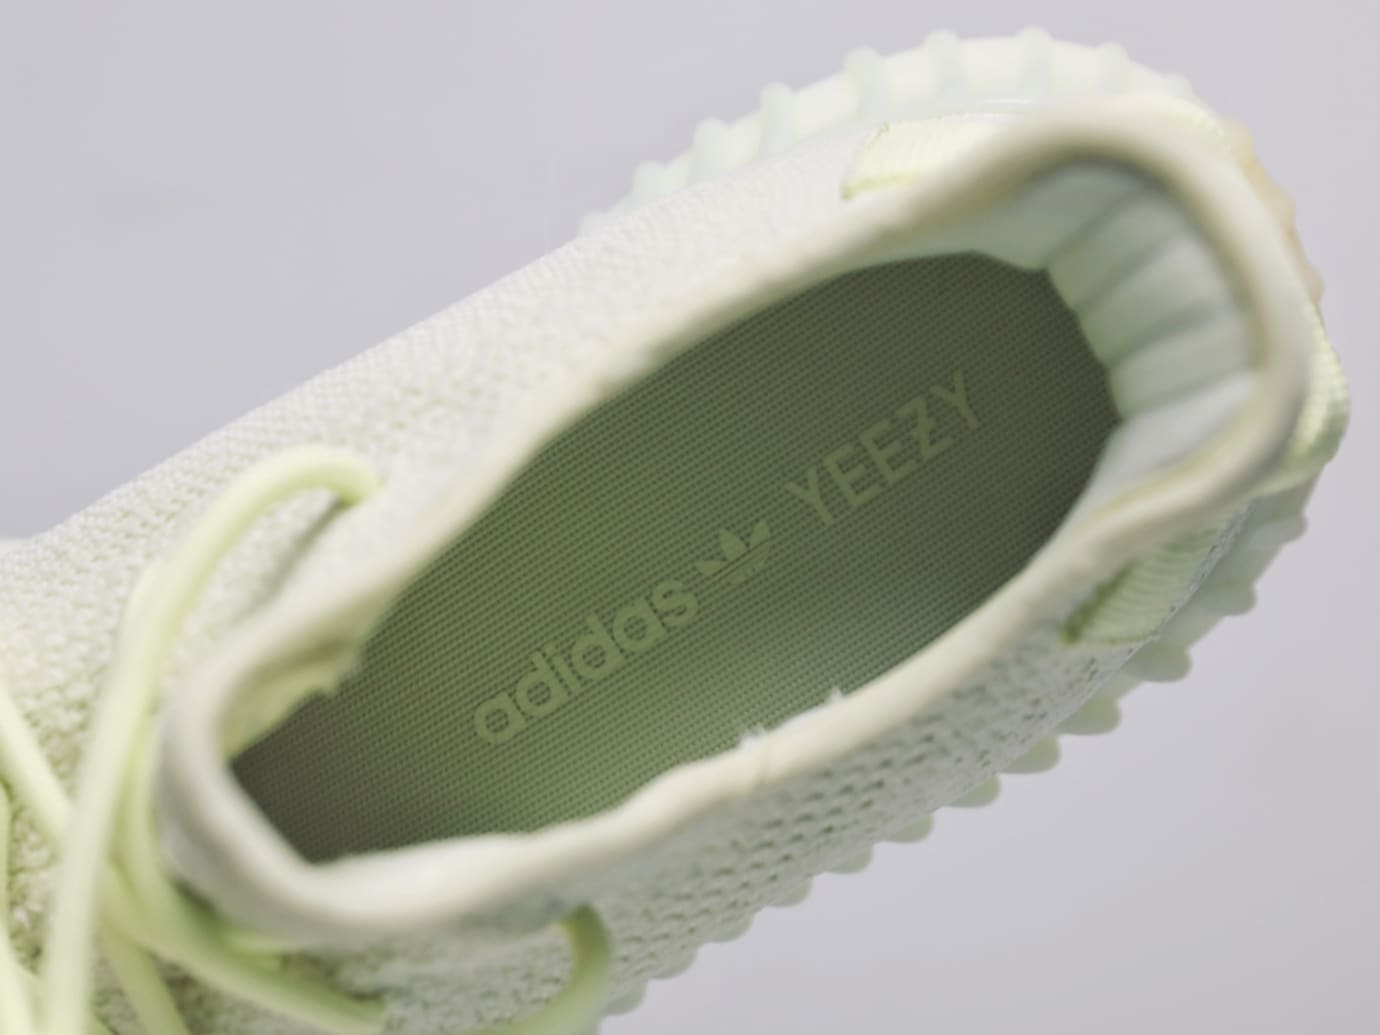 Adidas Yeezy Boost 350 V2 'Butter' (Insole)